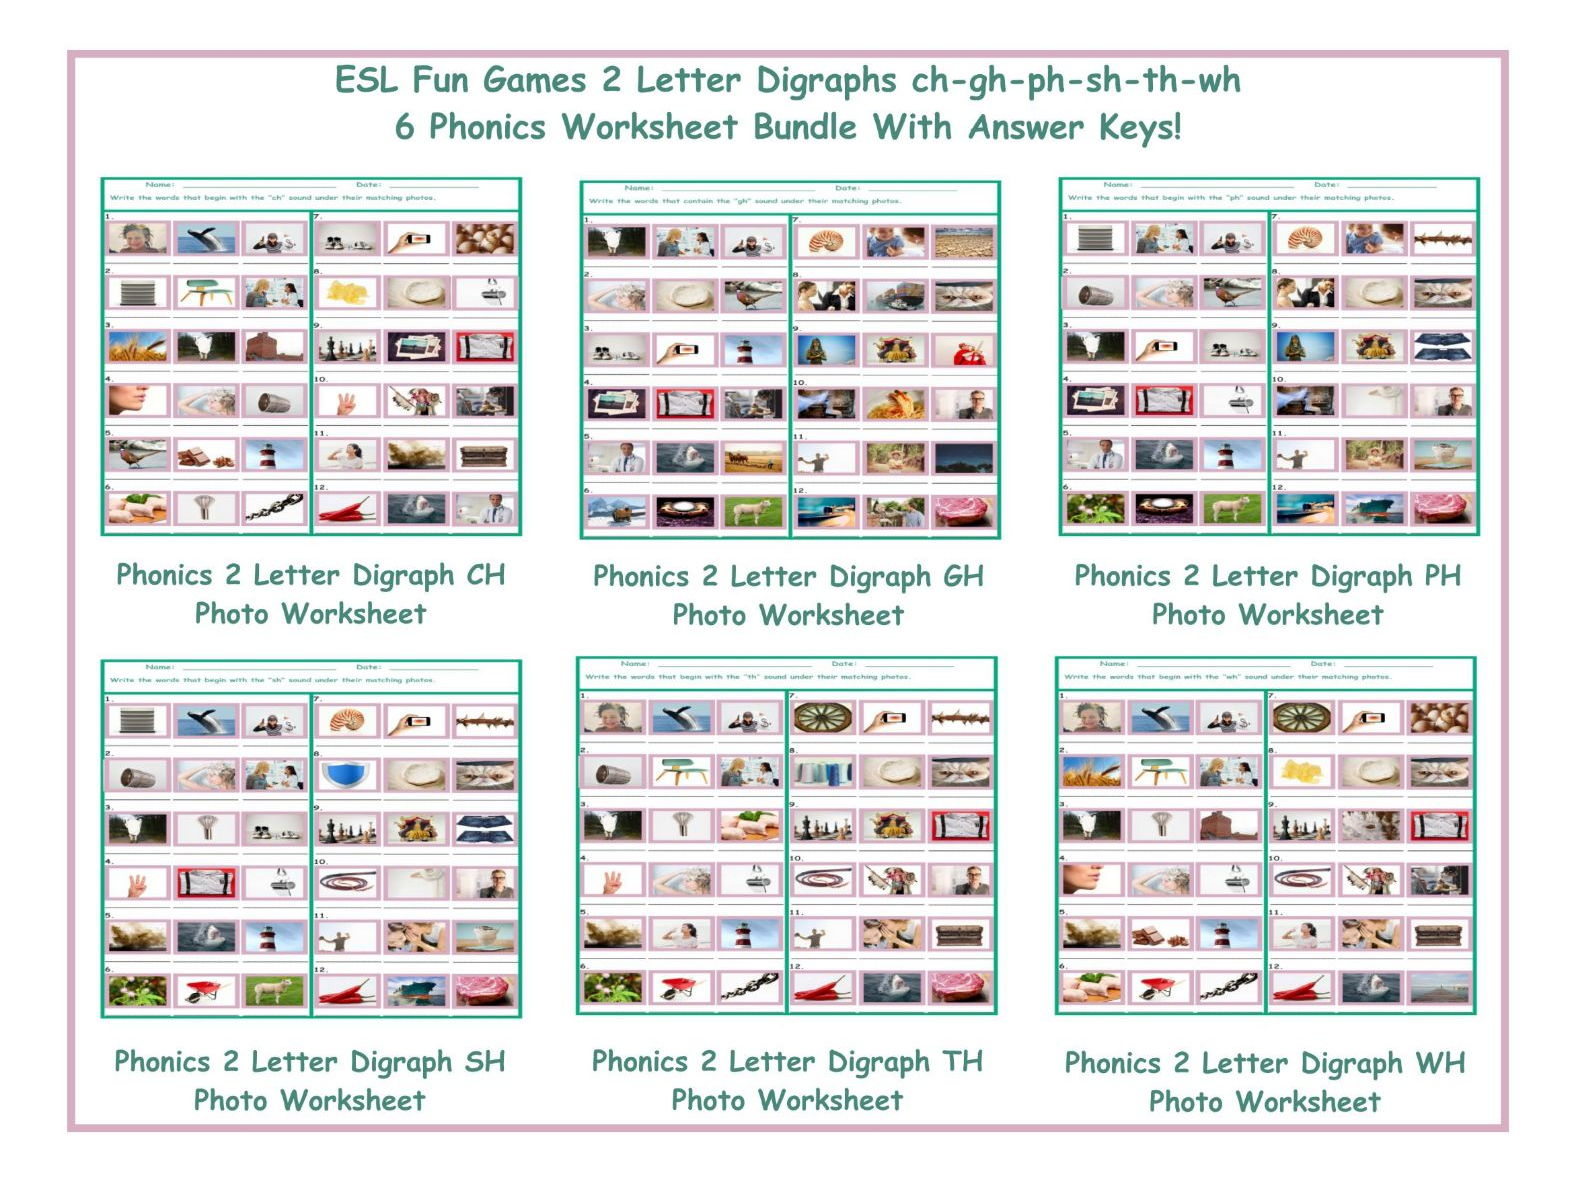 worksheet Ch Worksheet phonics 2 letter digraphs ch gh ph sh th wh worksheet bundle by eslfungames teaching resources tes